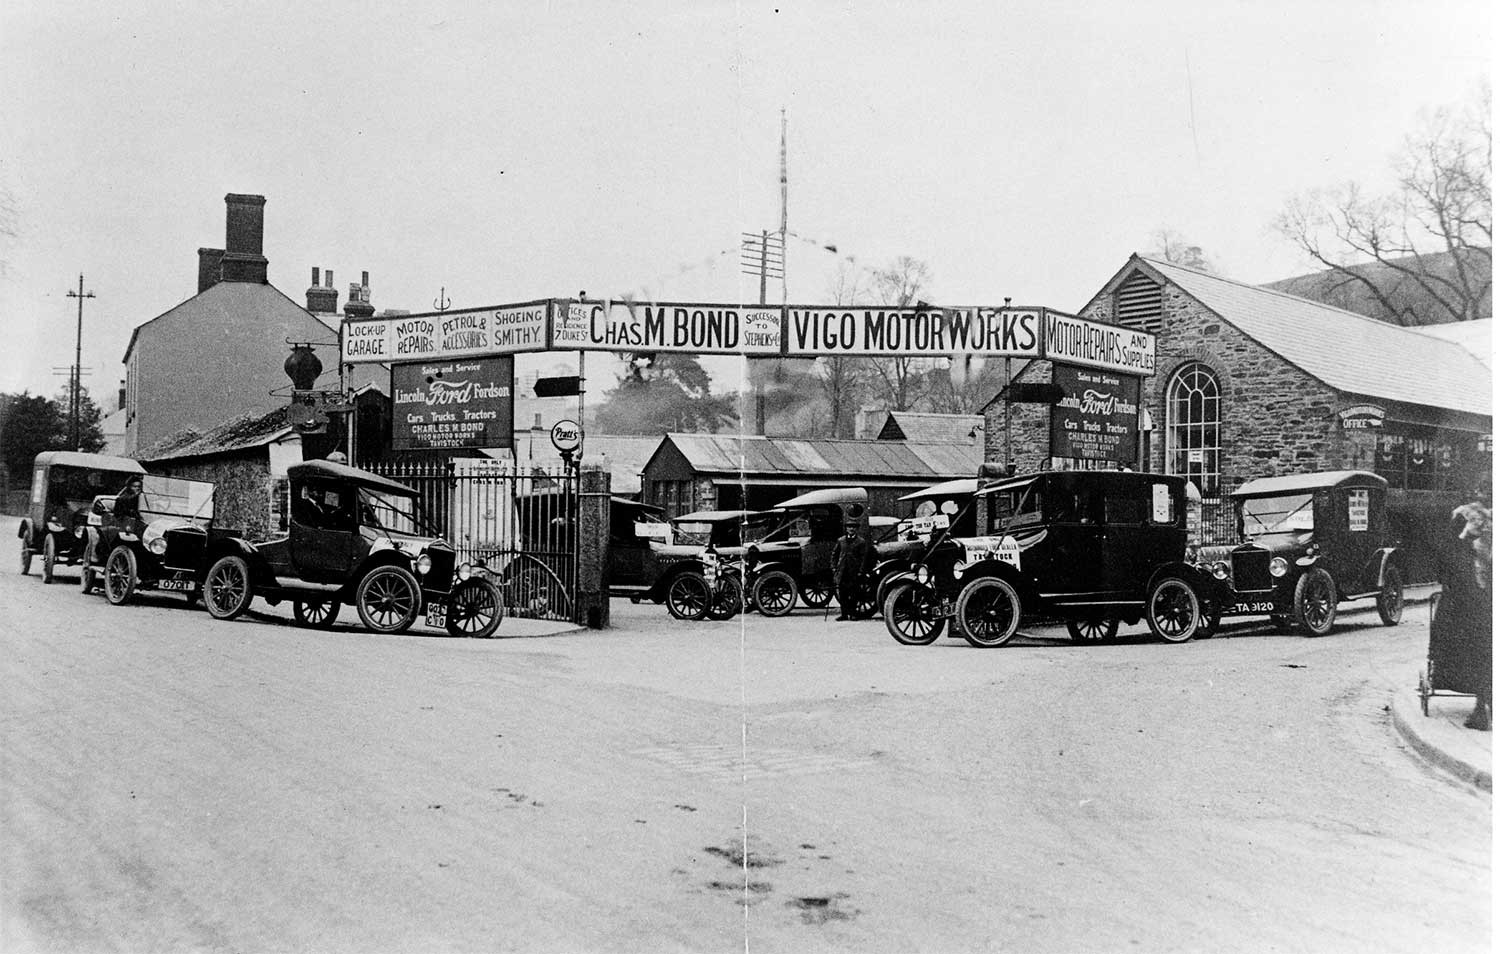 Vigo Motor Works, date unknown